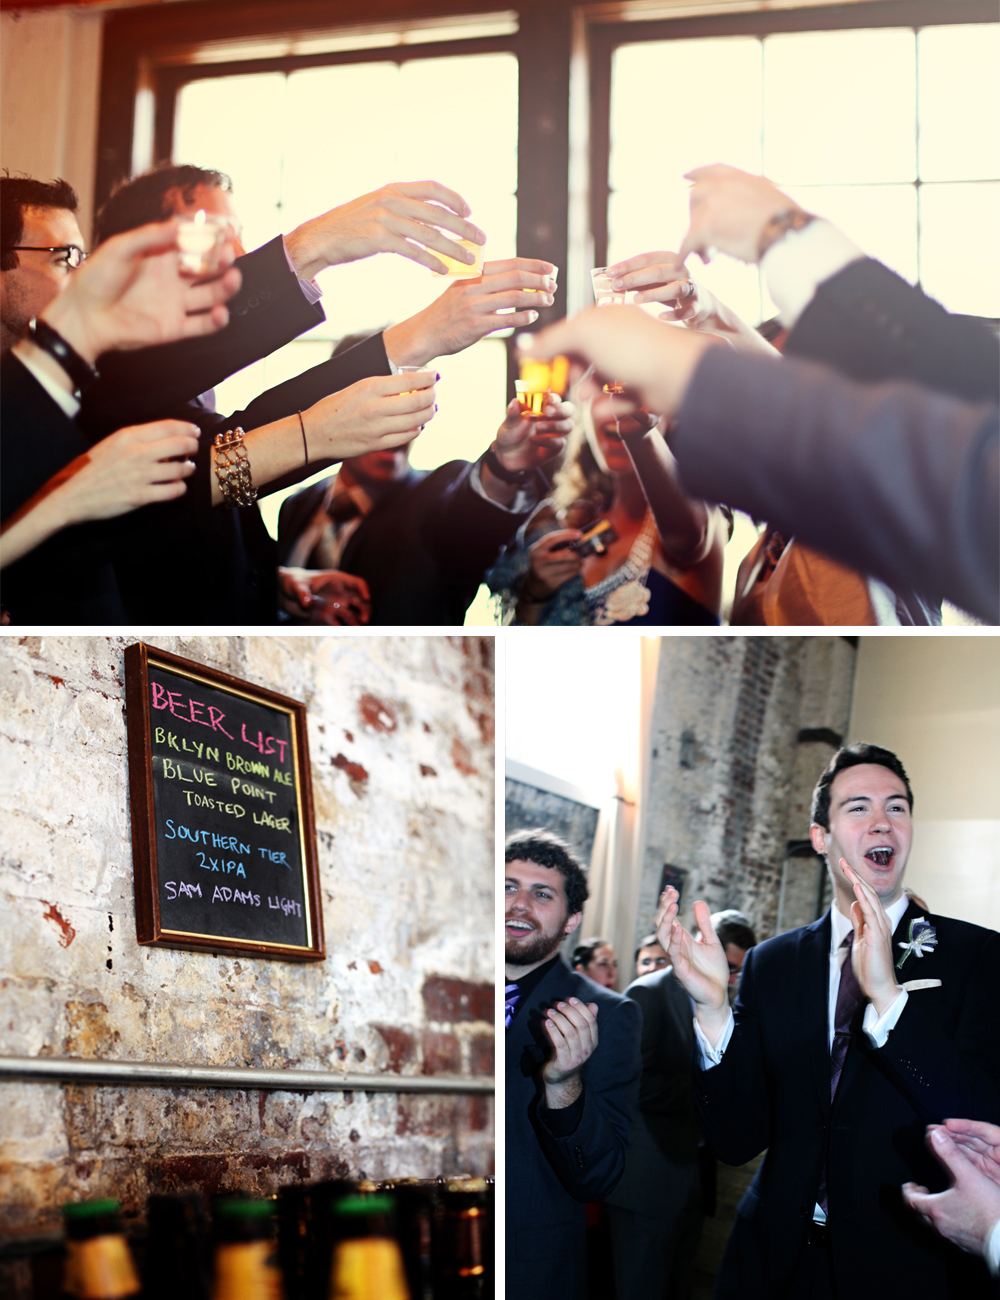 Jewish wedding drinking at The Green Building, Brooklyn, New York 1